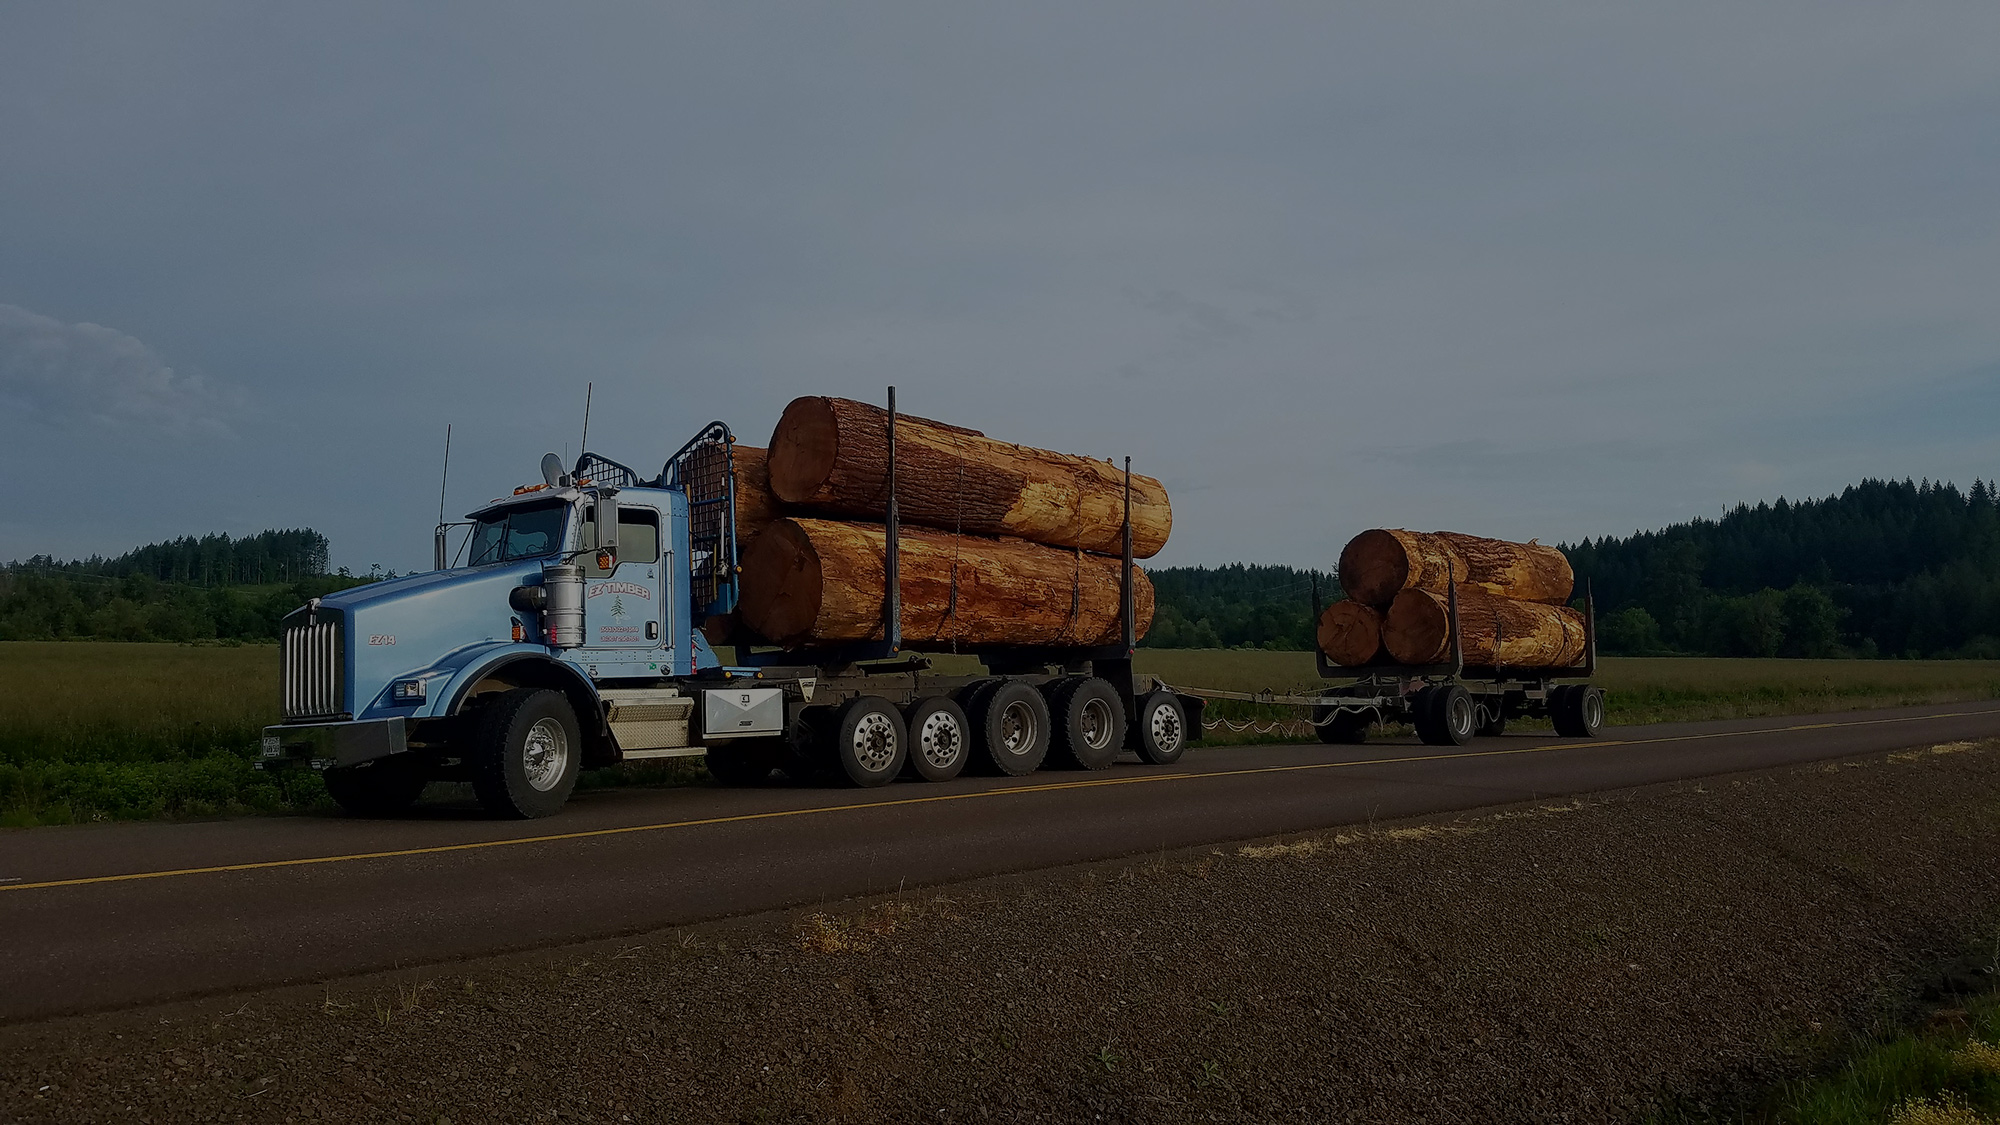 HAULING LOGS FOR OVER 40 YEARS